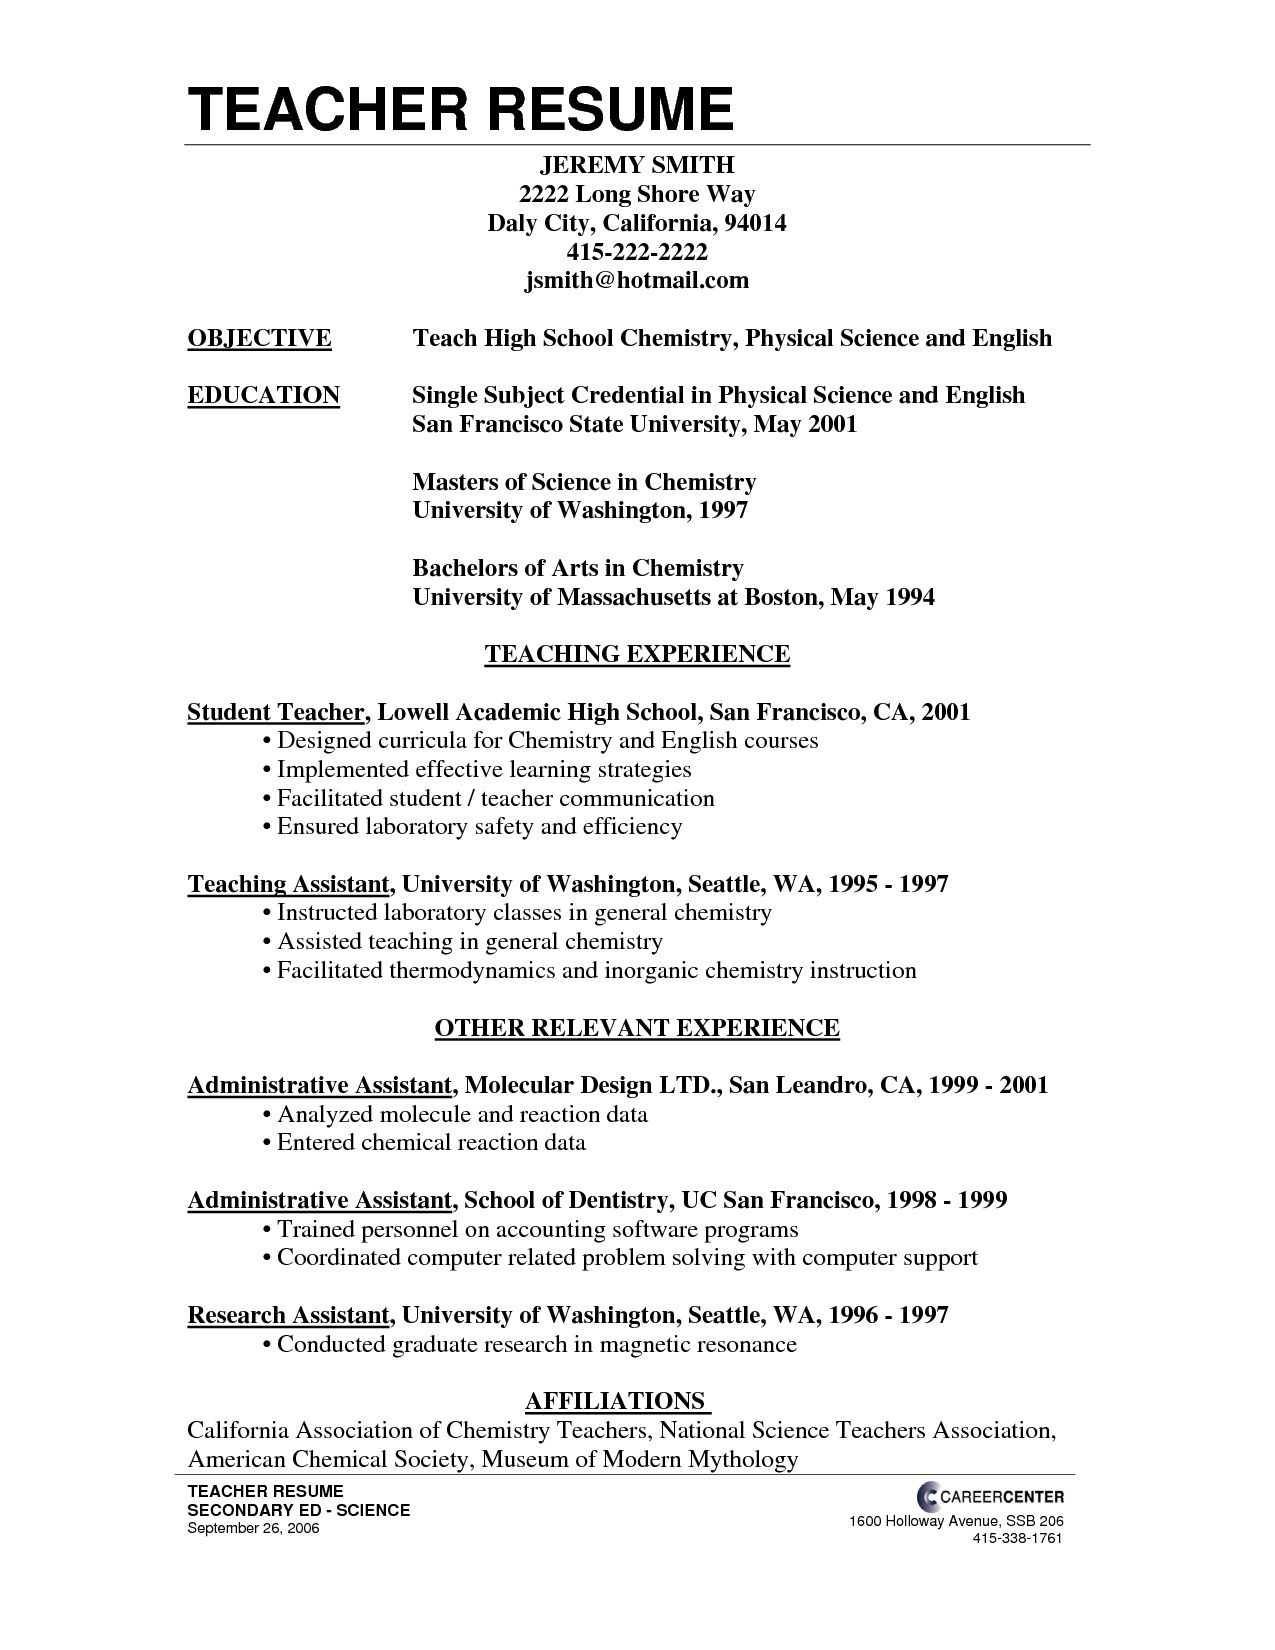 high school teacher resume httpjobresumesamplecom547high - Teaching Jobs Resume Sample